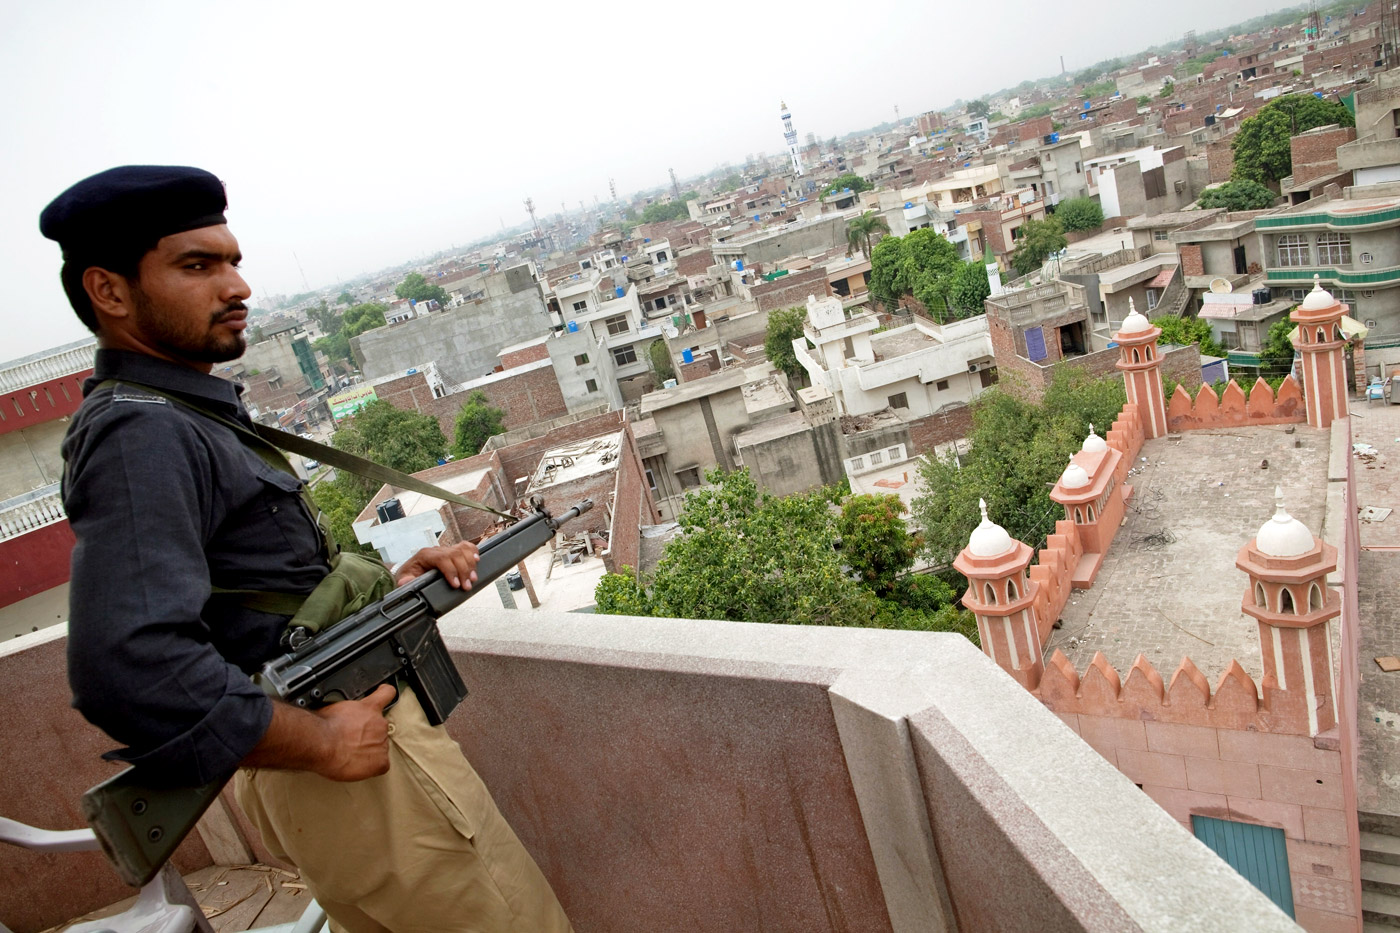 A policeman guards Garhi Shahu mosque, an Ahmadi place of worship in Lahore, which was attacked in May 2010